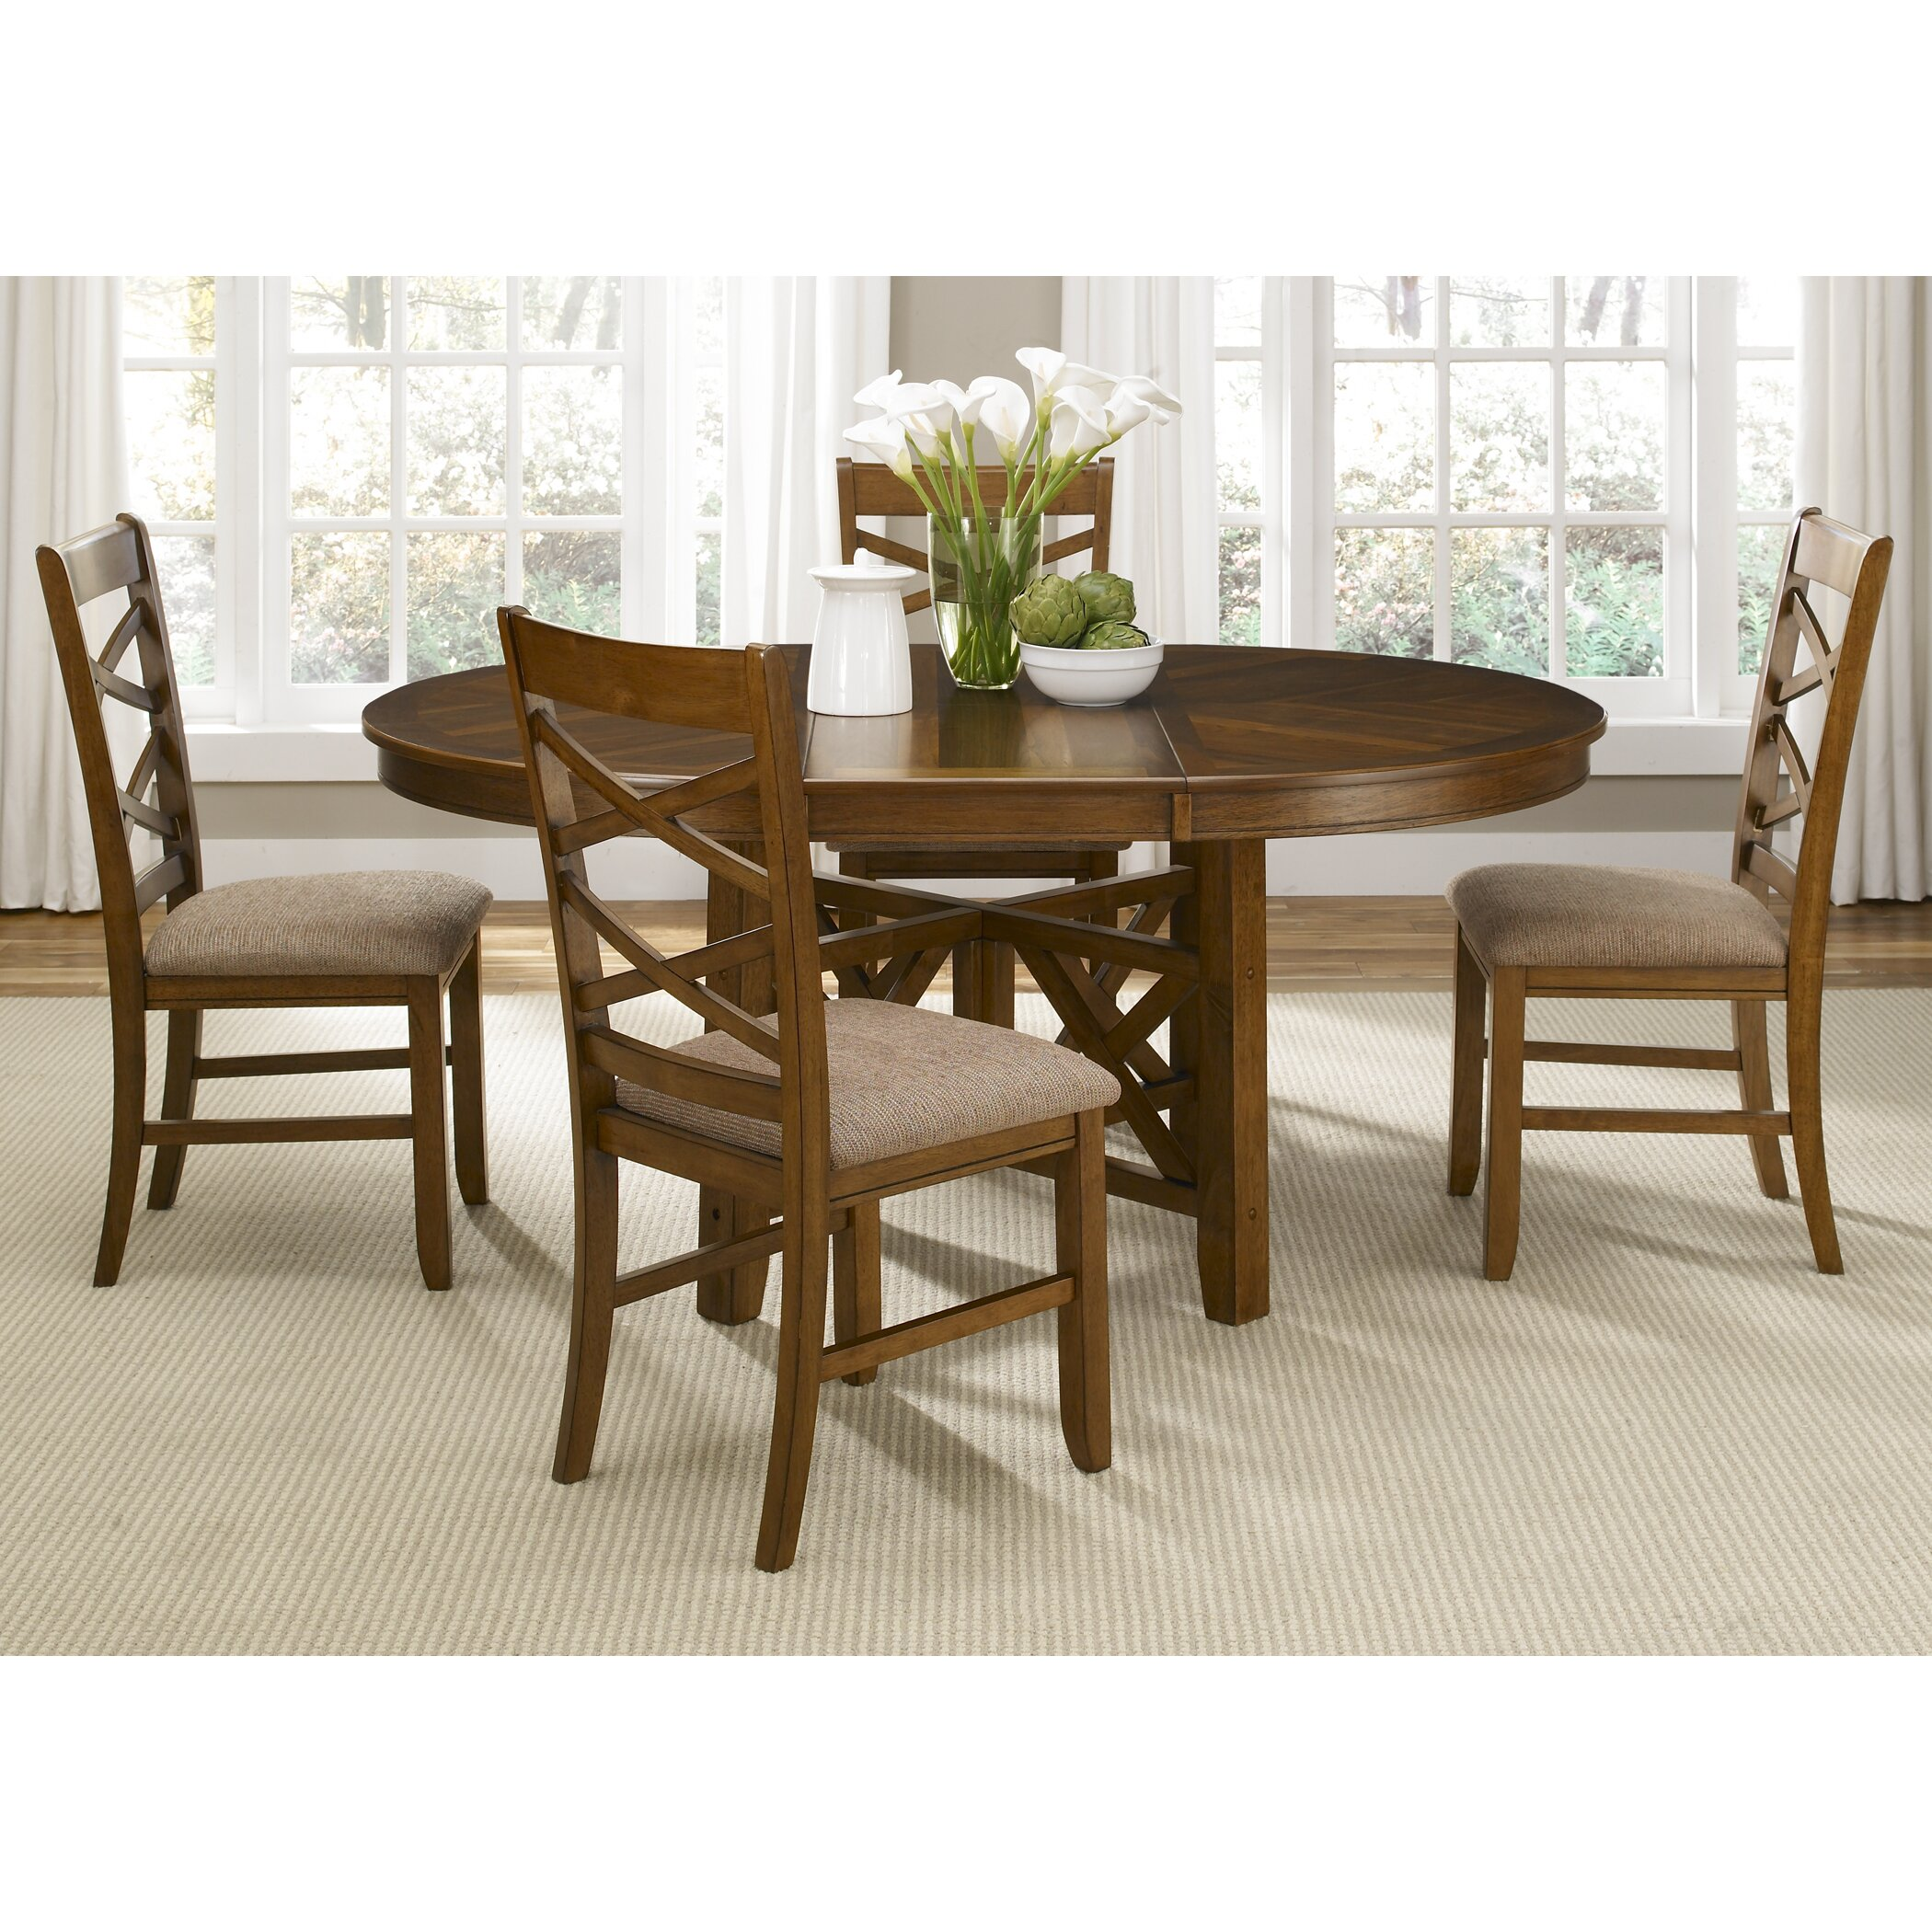 Liberty furniture bistro 5 piece dining set reviews for Dinette furniture